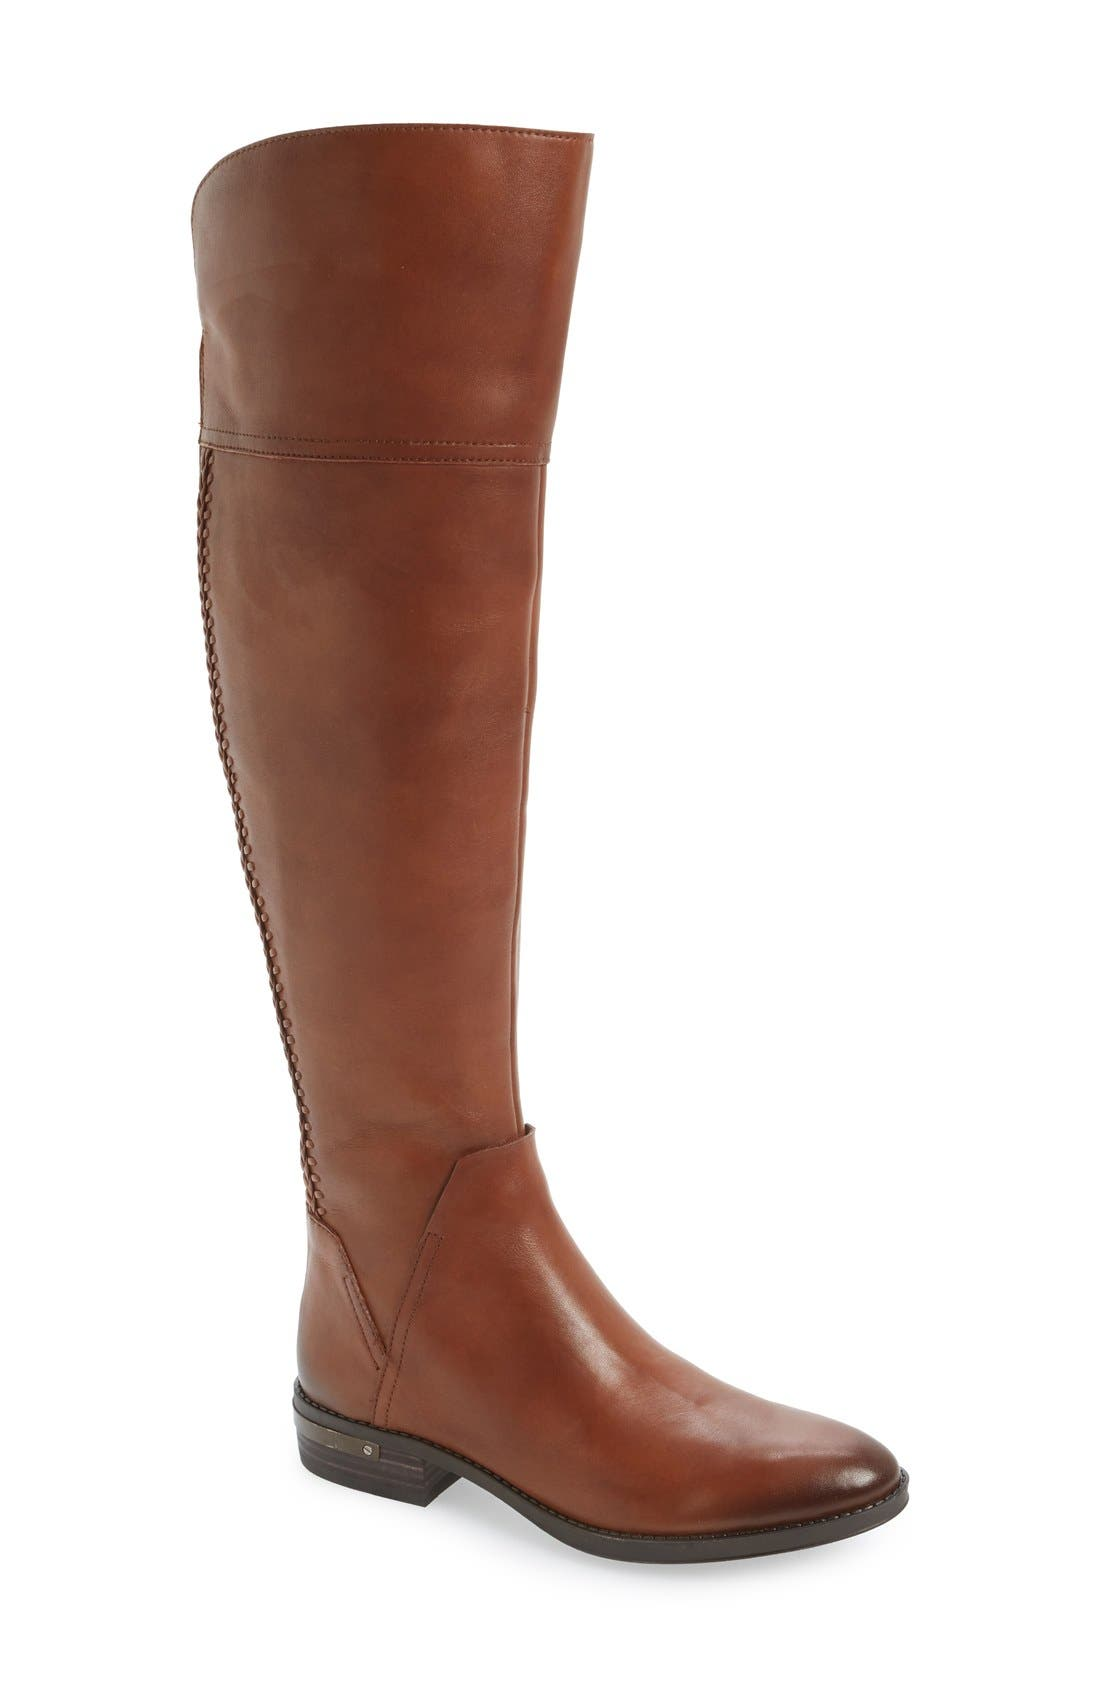 Alternate Image 1 Selected - Vince Camuto 'Pedra' Over the Knee Boot (Women)